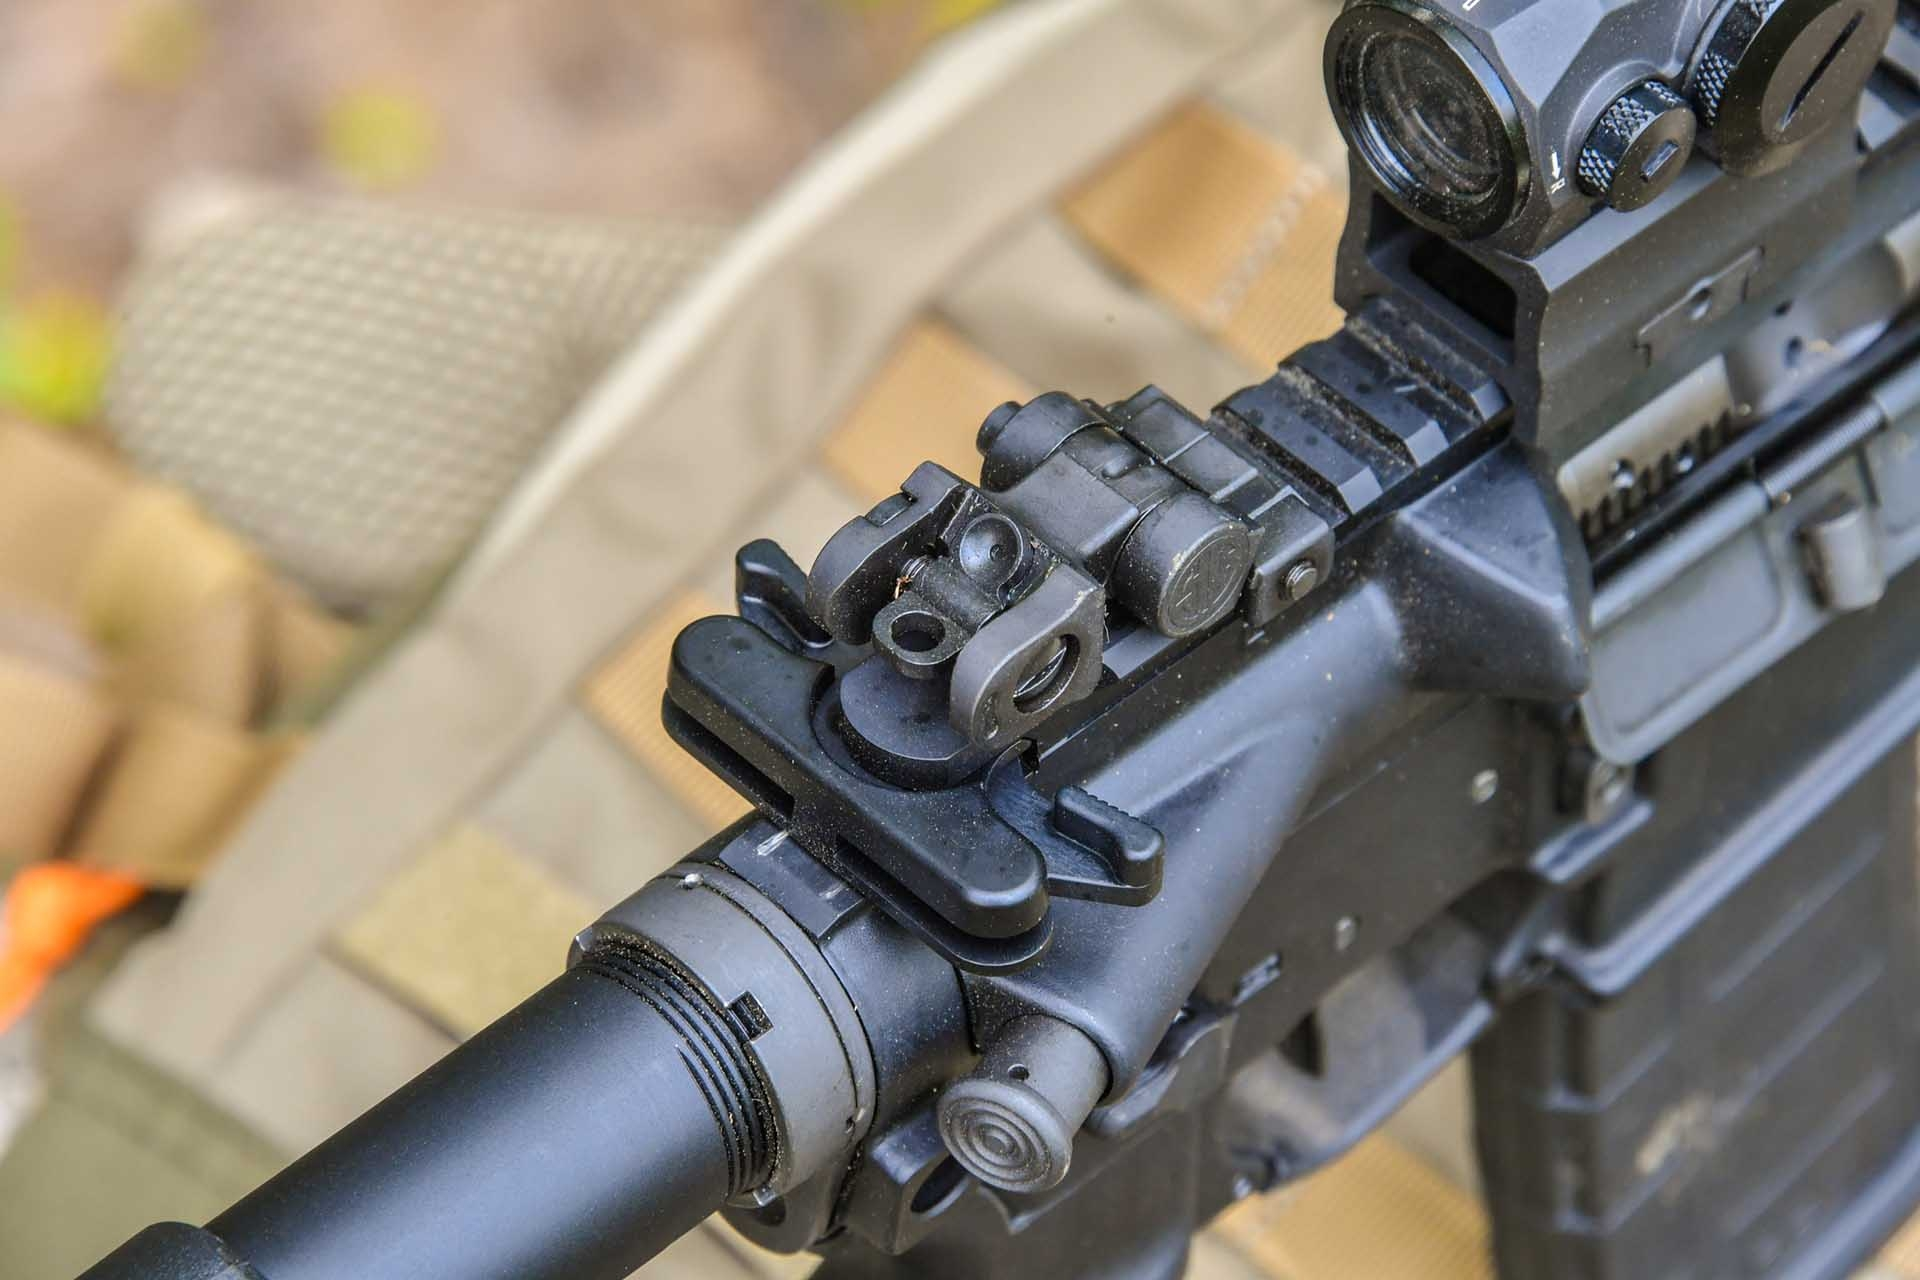 The flip-up rear iron sights of the SIG Sauer M400 TREAD rifle